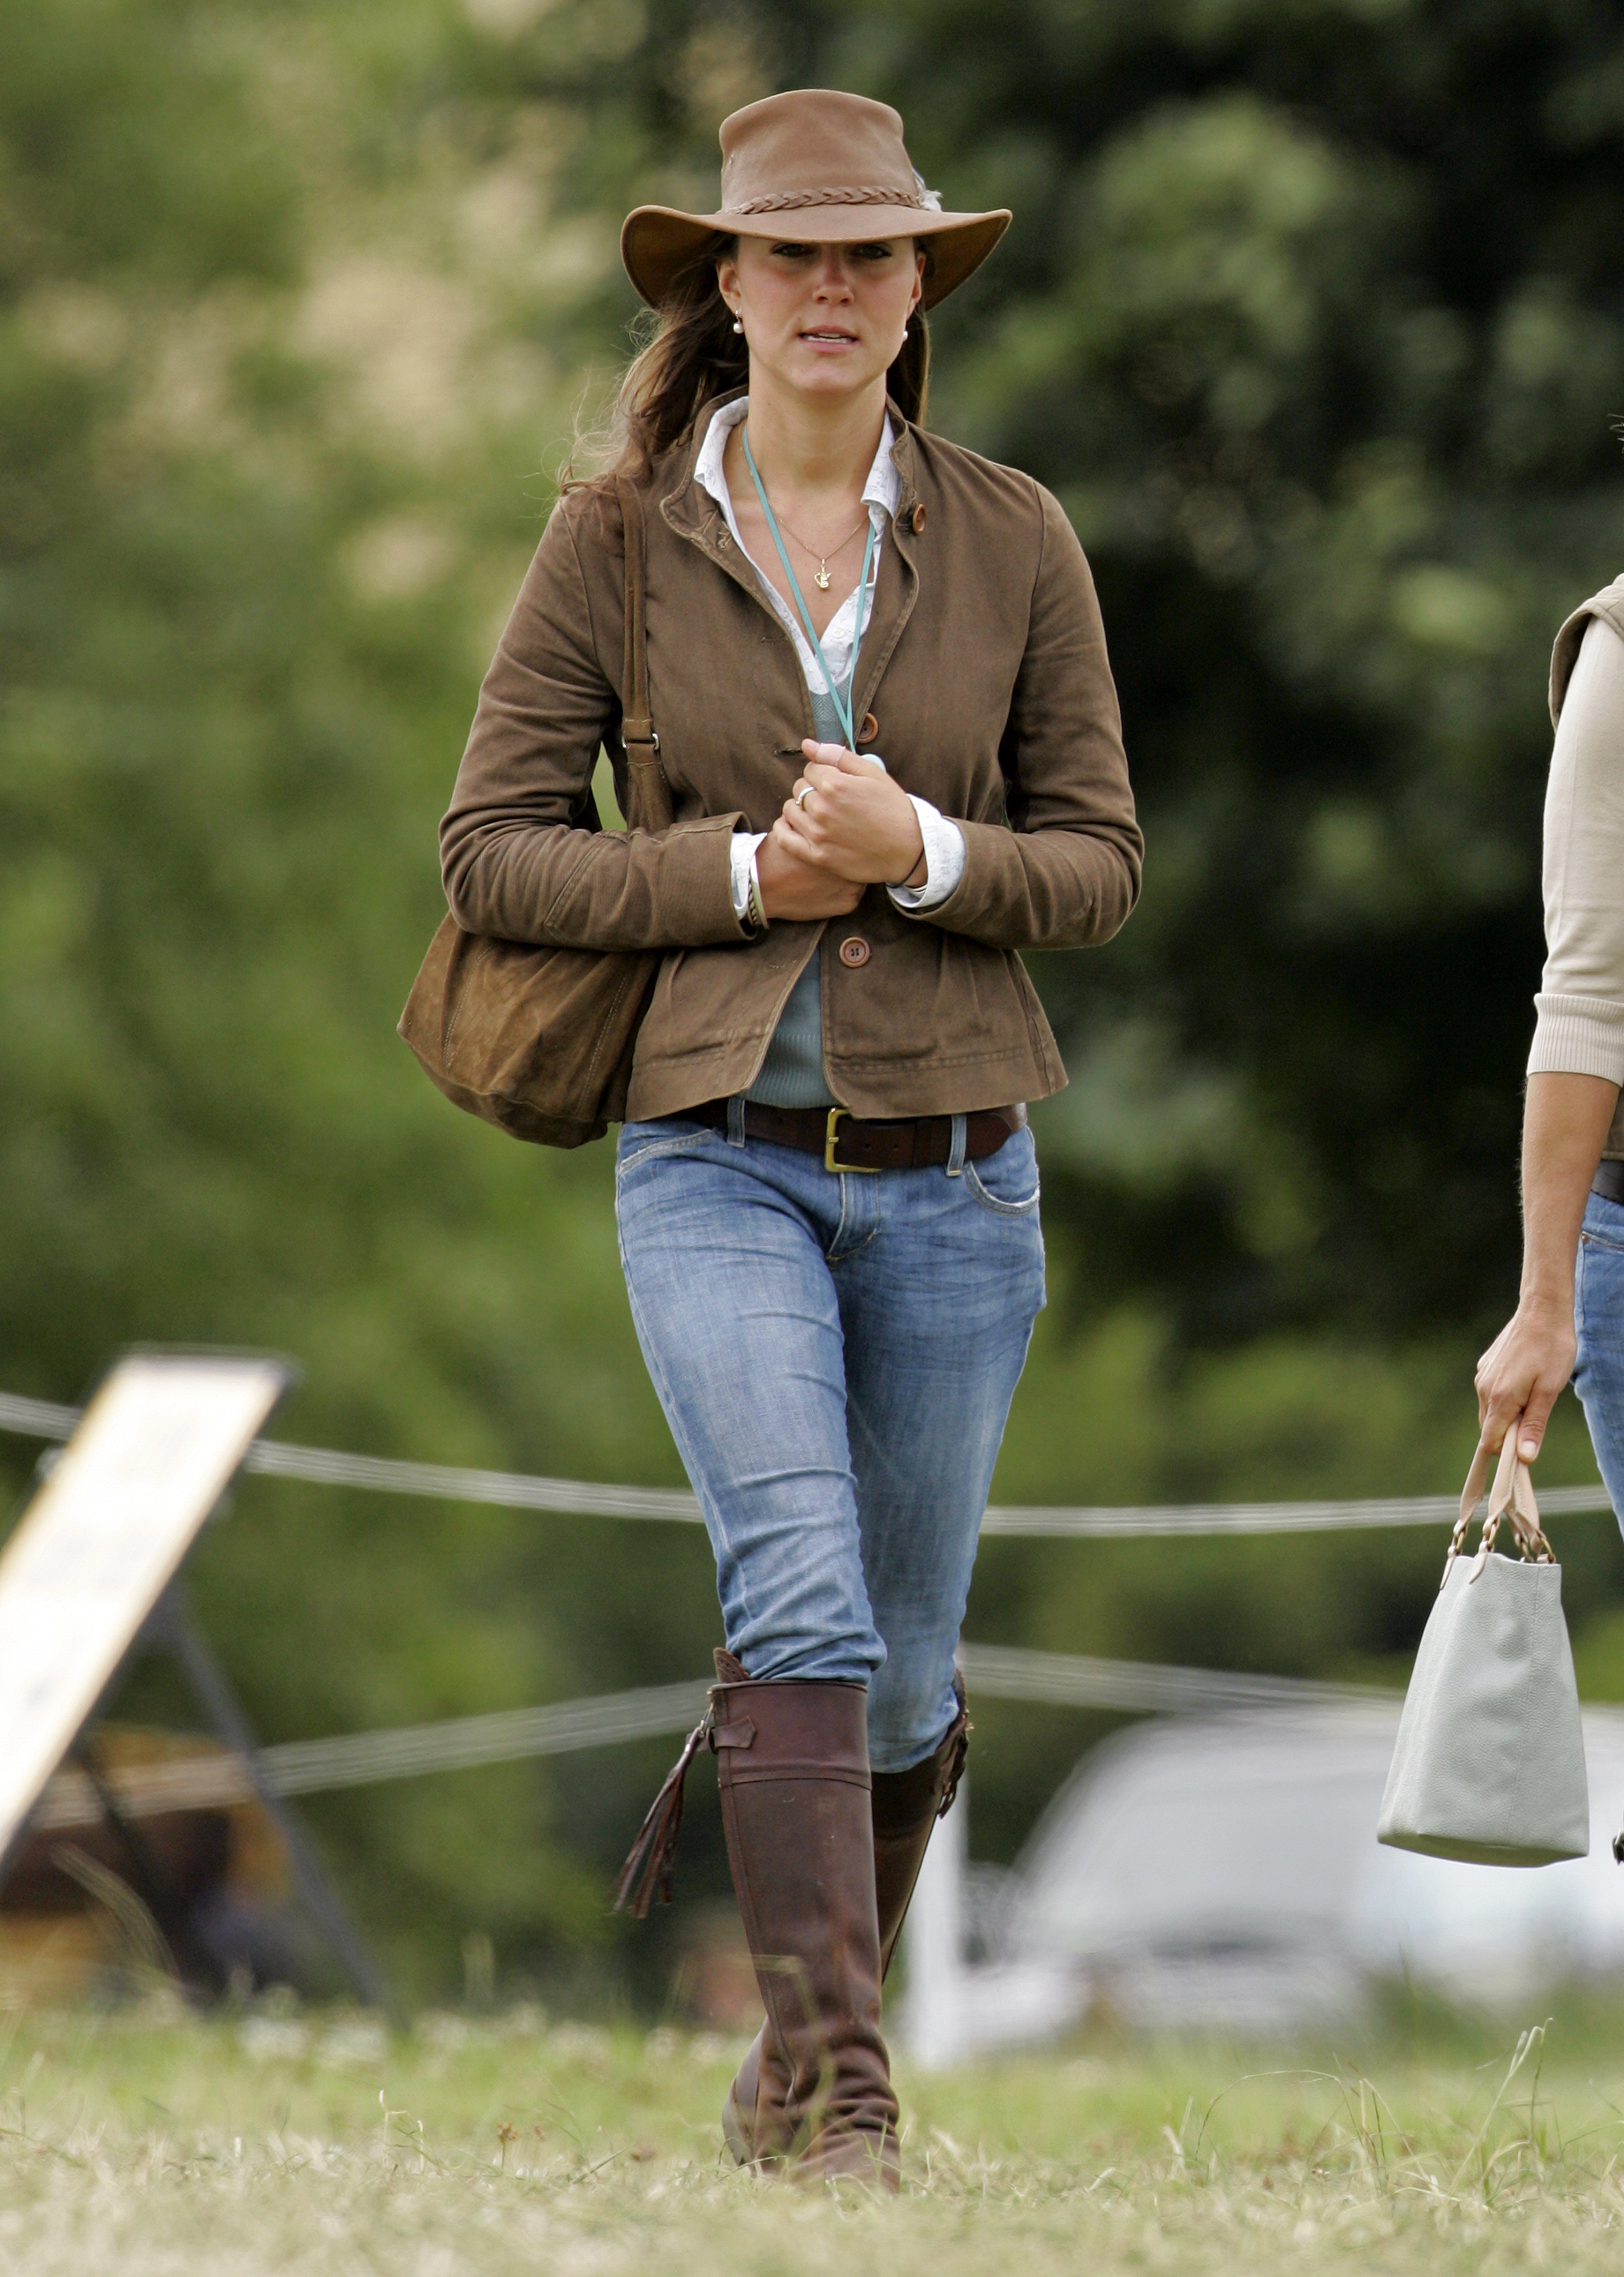 Kate Middleton attends the Festival of British Eventing at Gatcombe Park on August 6, 2005 in Stroud, England.